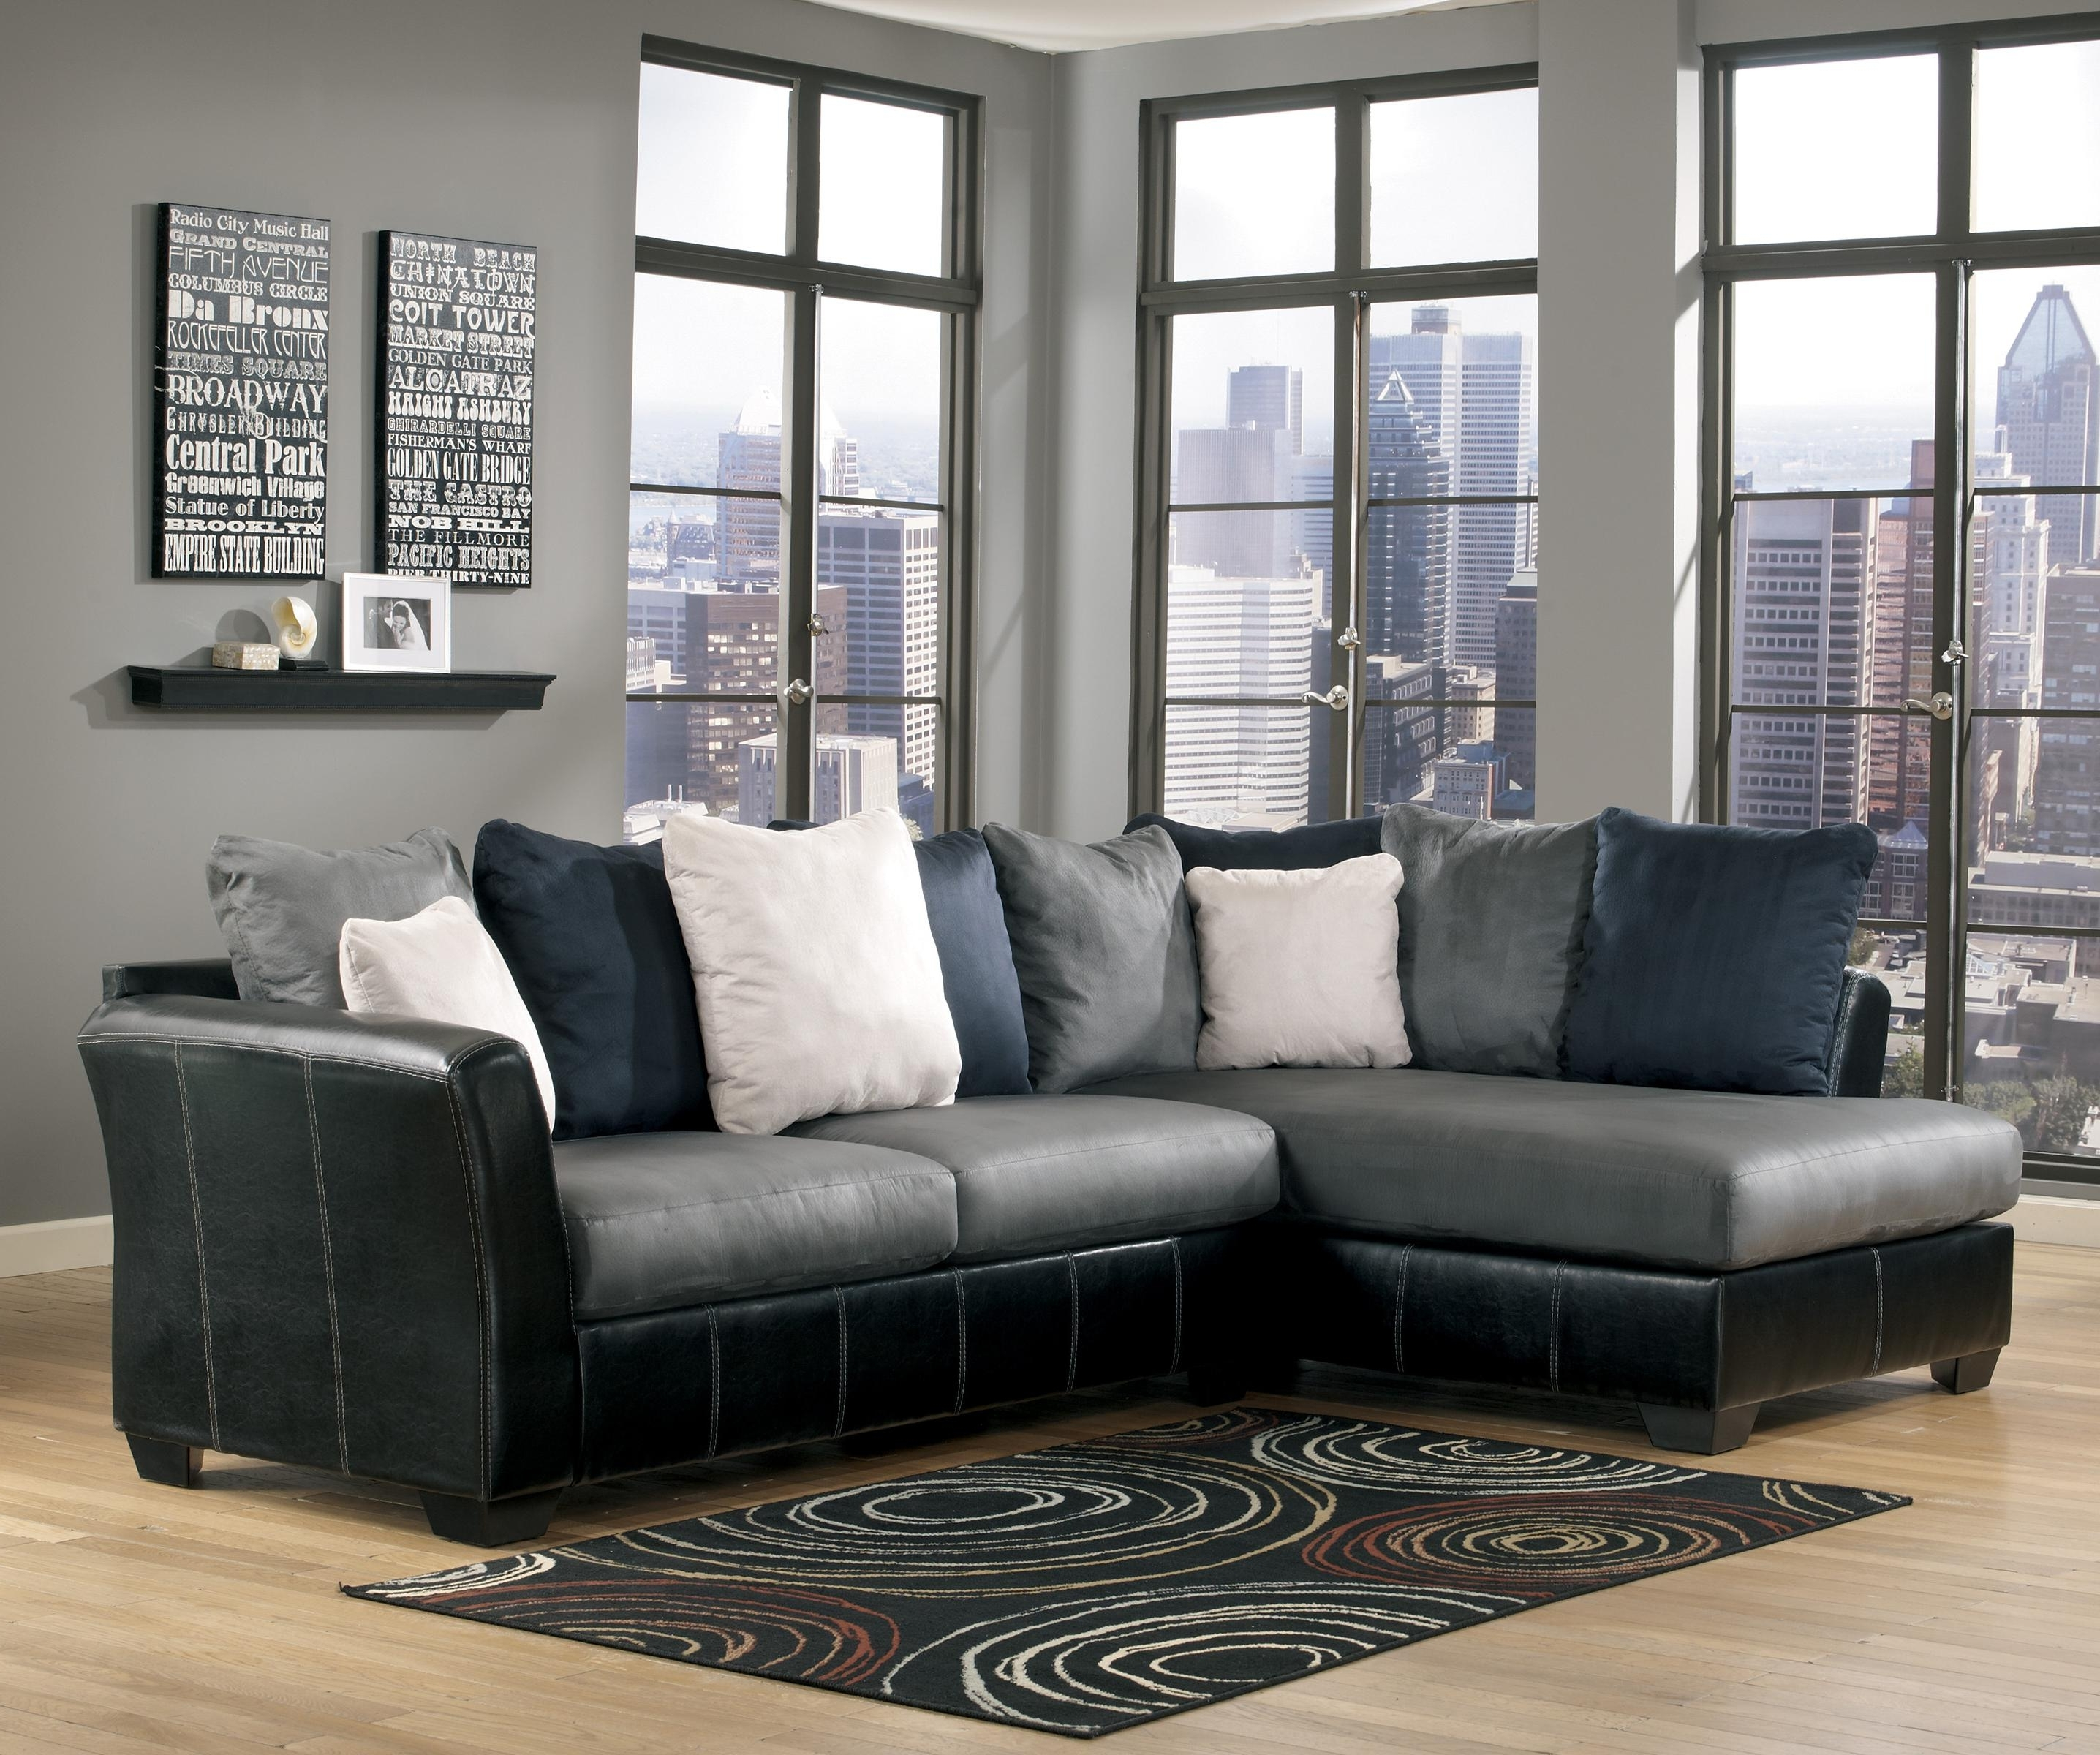 Eau Claire Wi Sectional Sofas Intended For Famous Masoli – Cobblestone 2 Piece Sectional With Chaisebenchcraft (View 5 of 15)